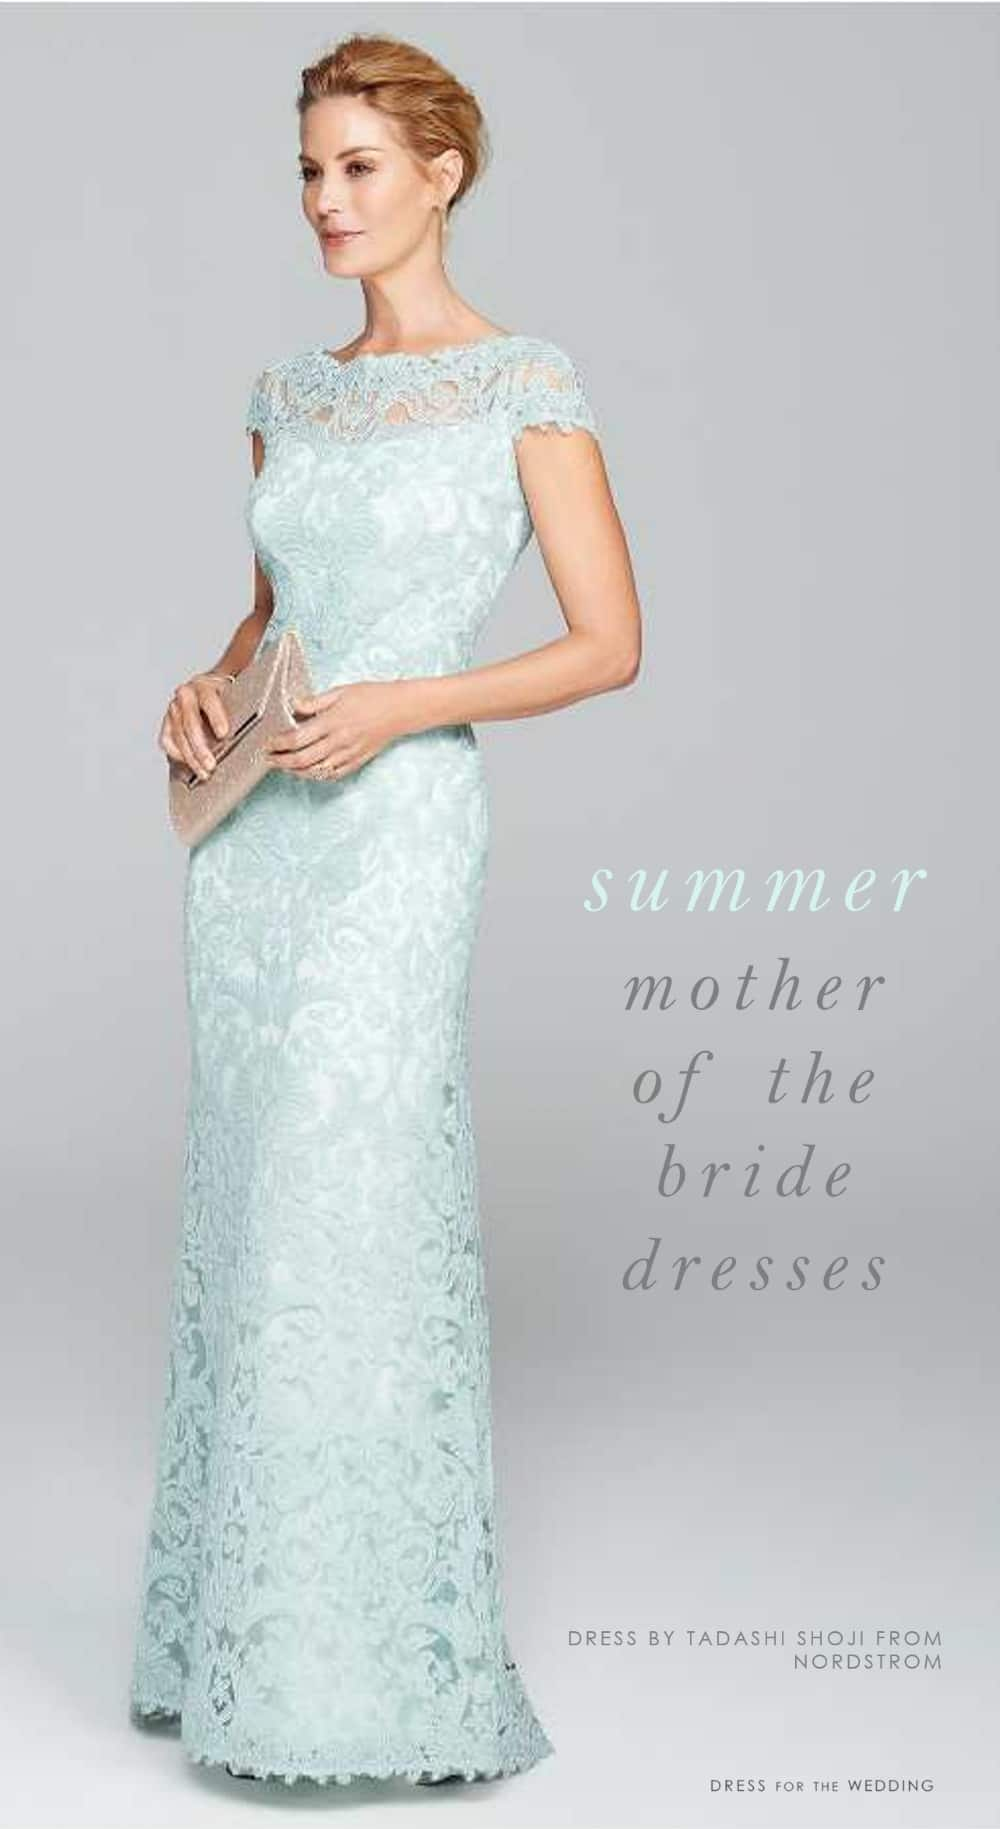 dresses for wedding mother of the bride photo - 1